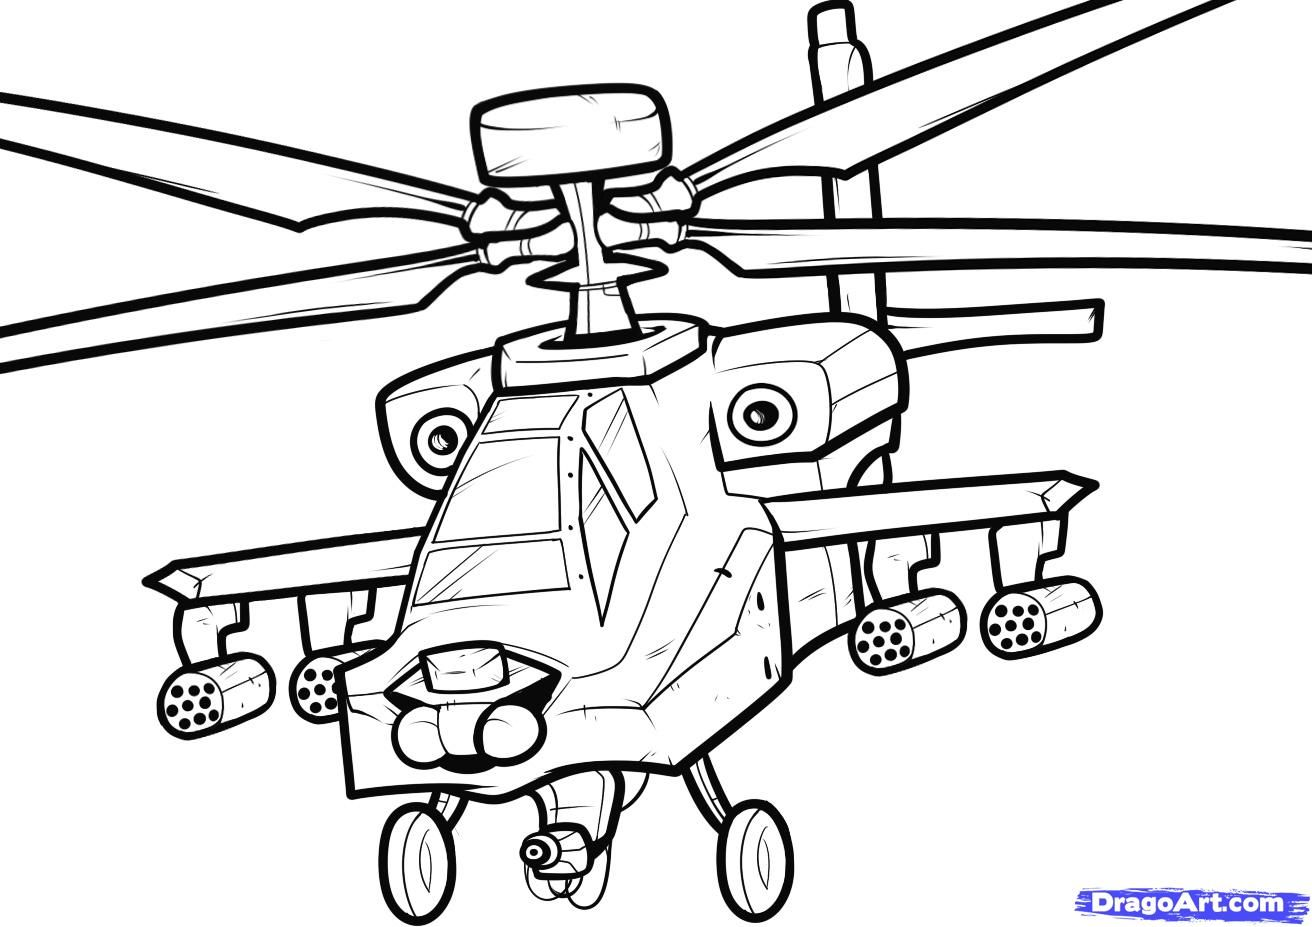 How to draw the Apache (Apache) helicopter step by step